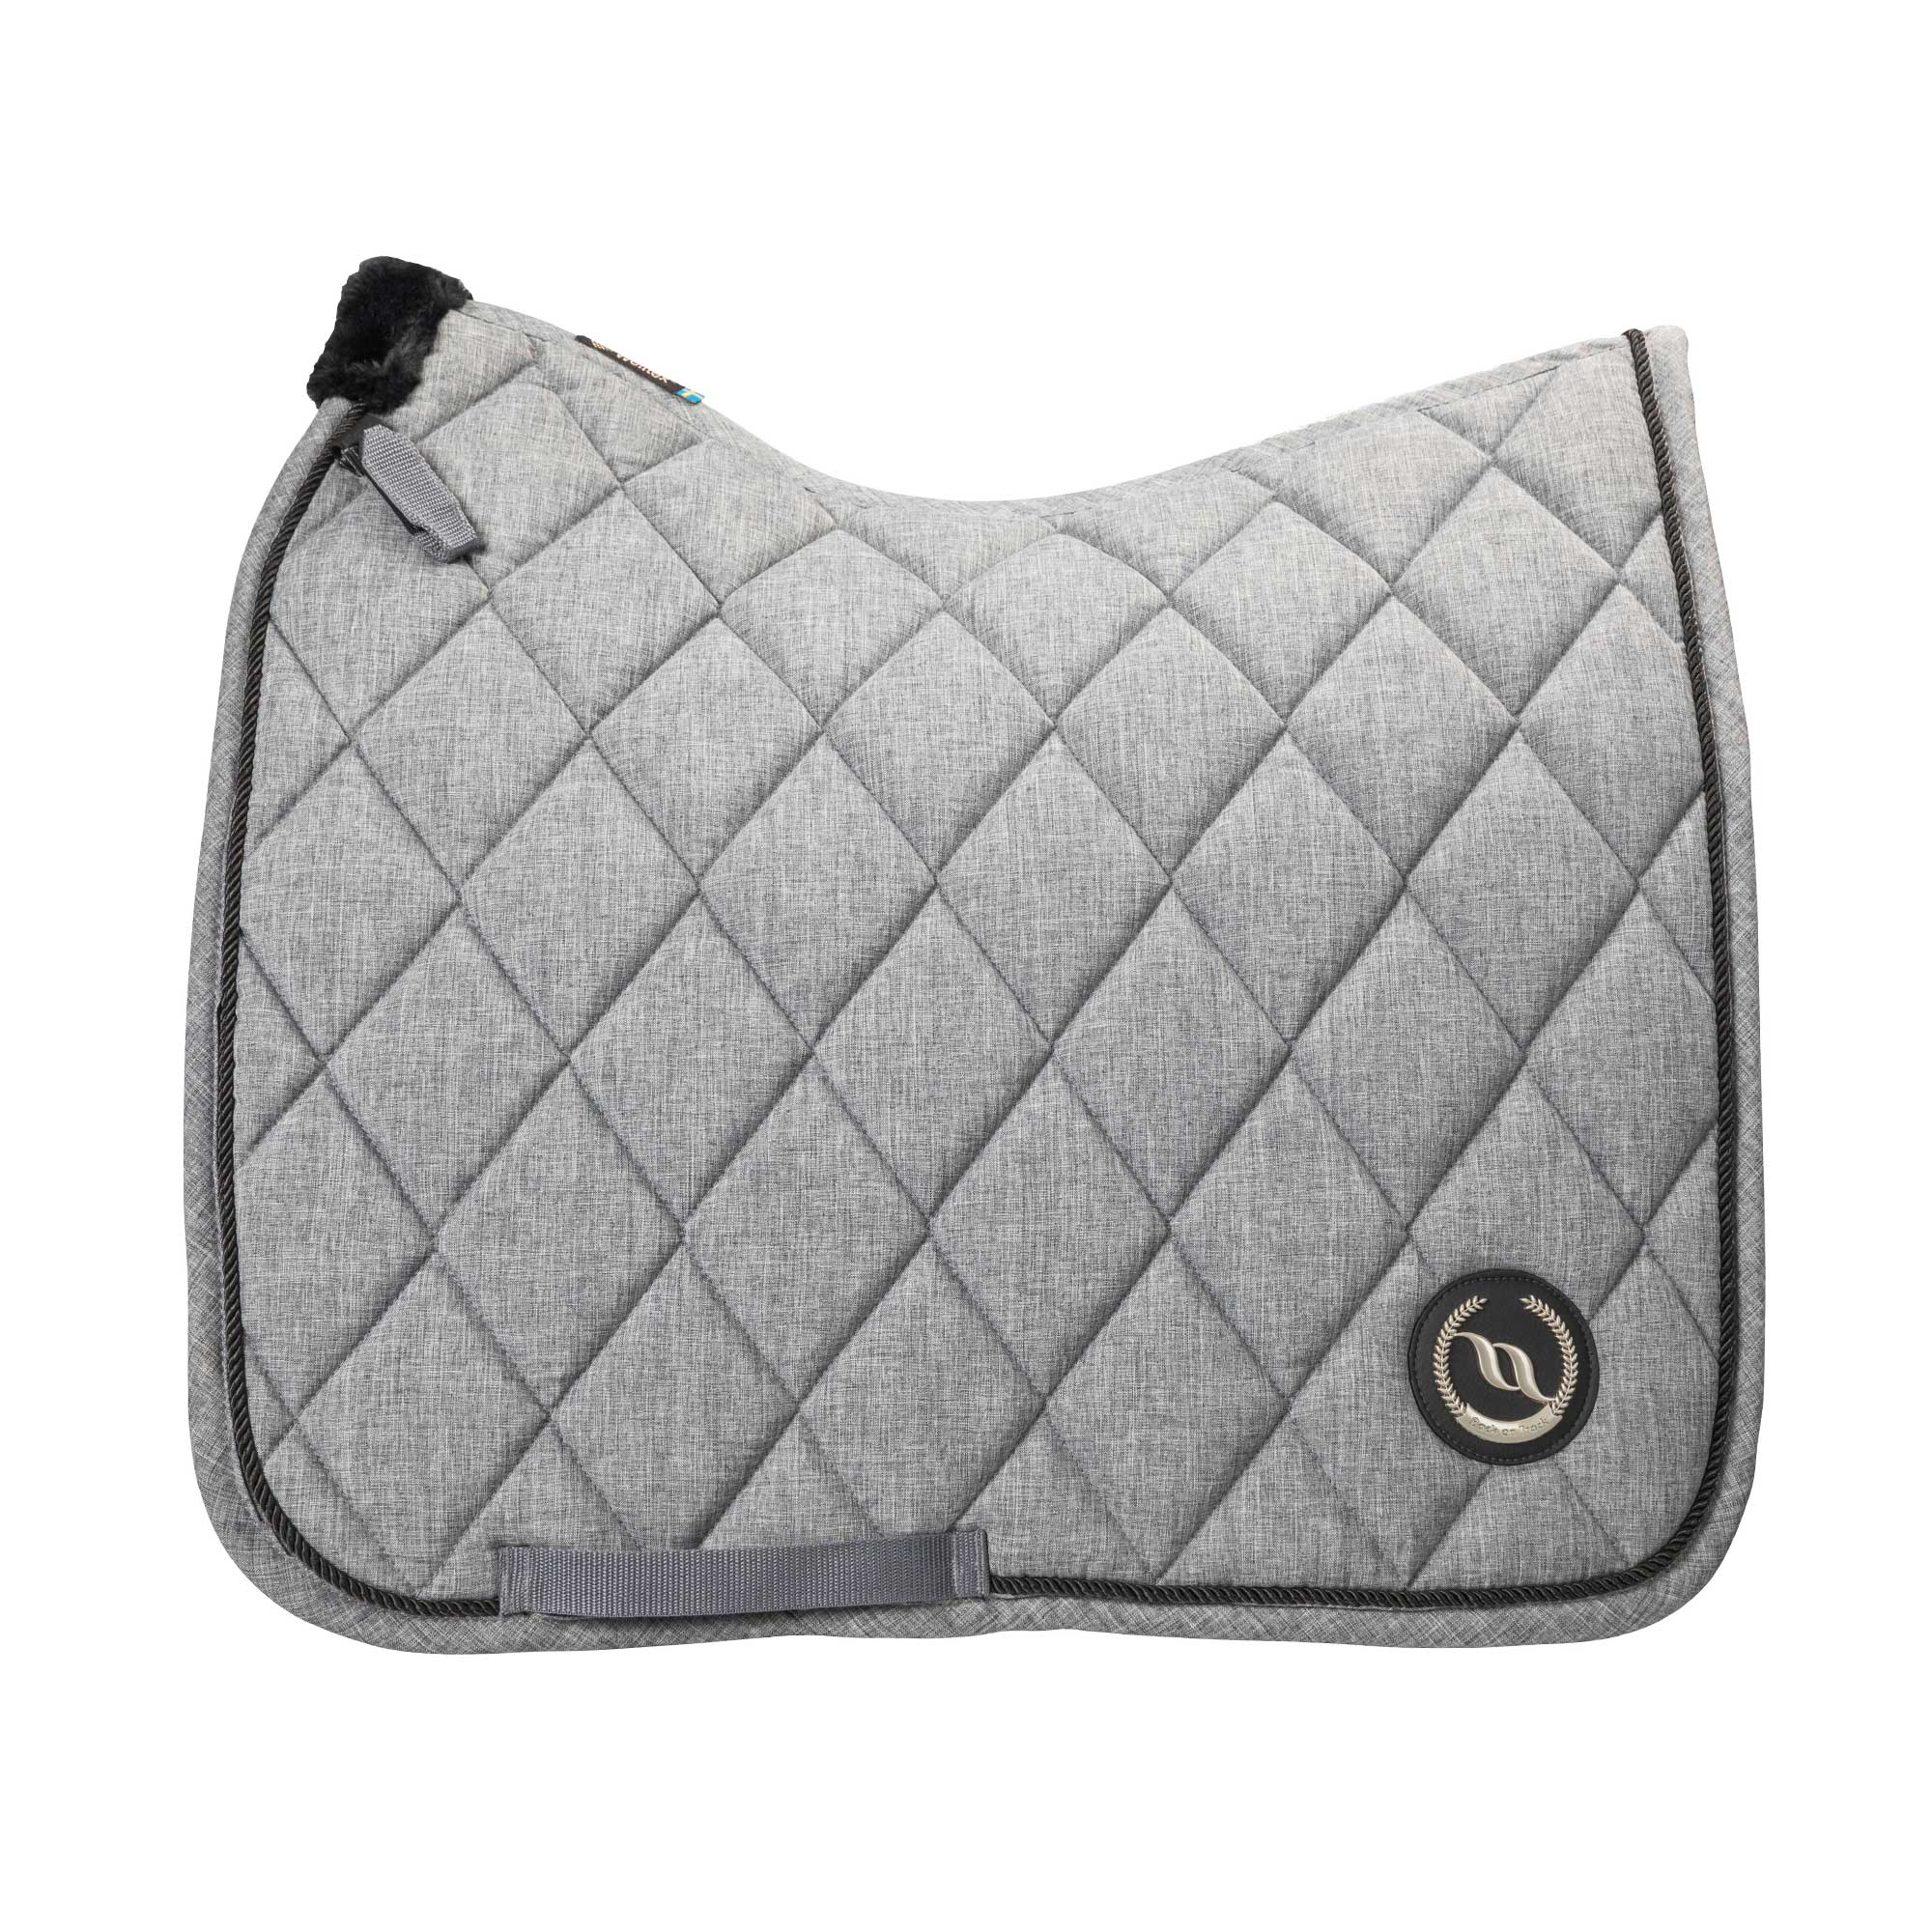 Haze Collection Saddle Pad Dressage